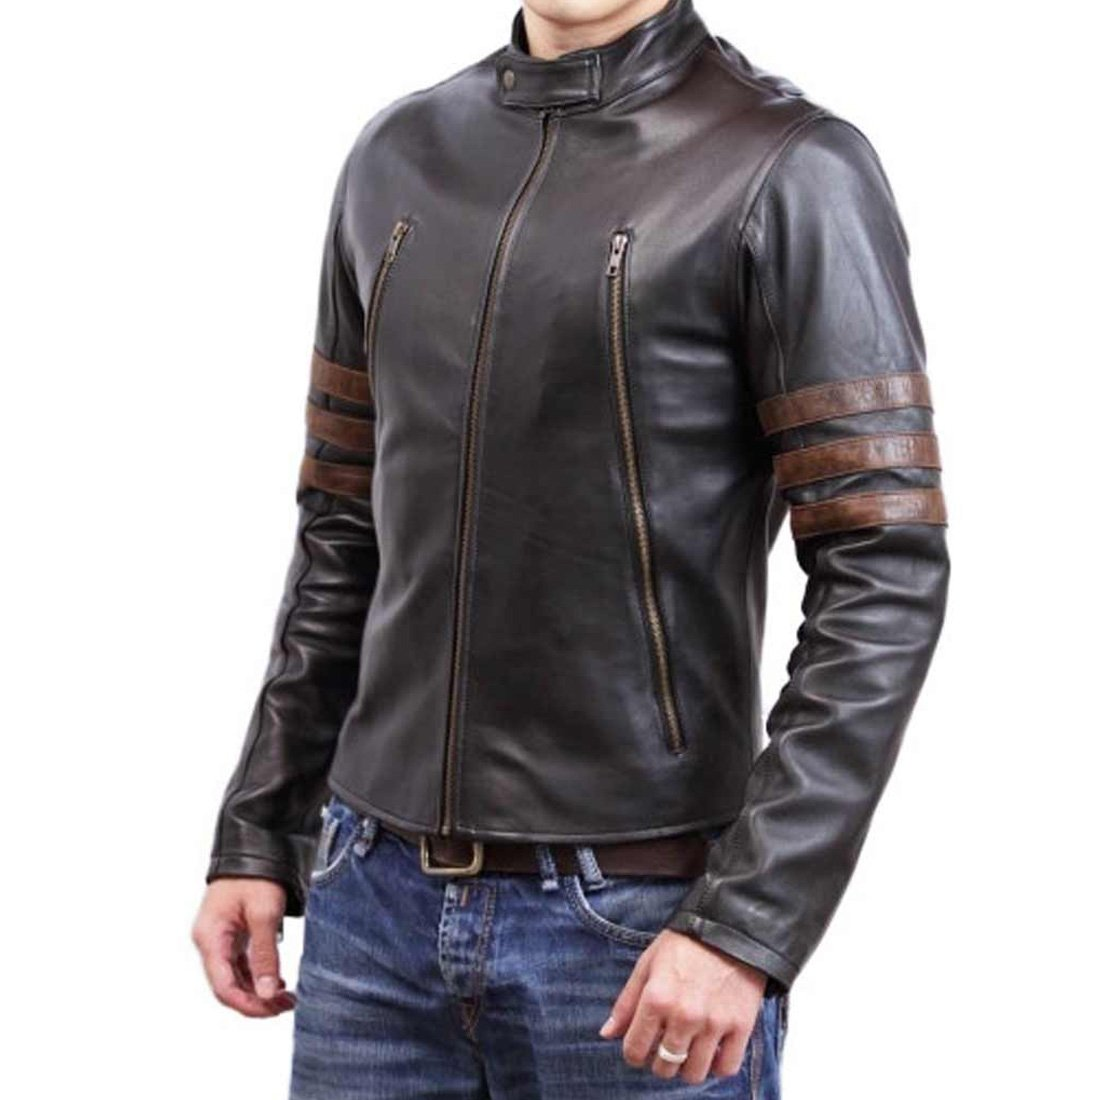 X Men Hugh Jackman Origins Wolverine Brown Motorcycle Logan Leather Jacket The Custom Jacket